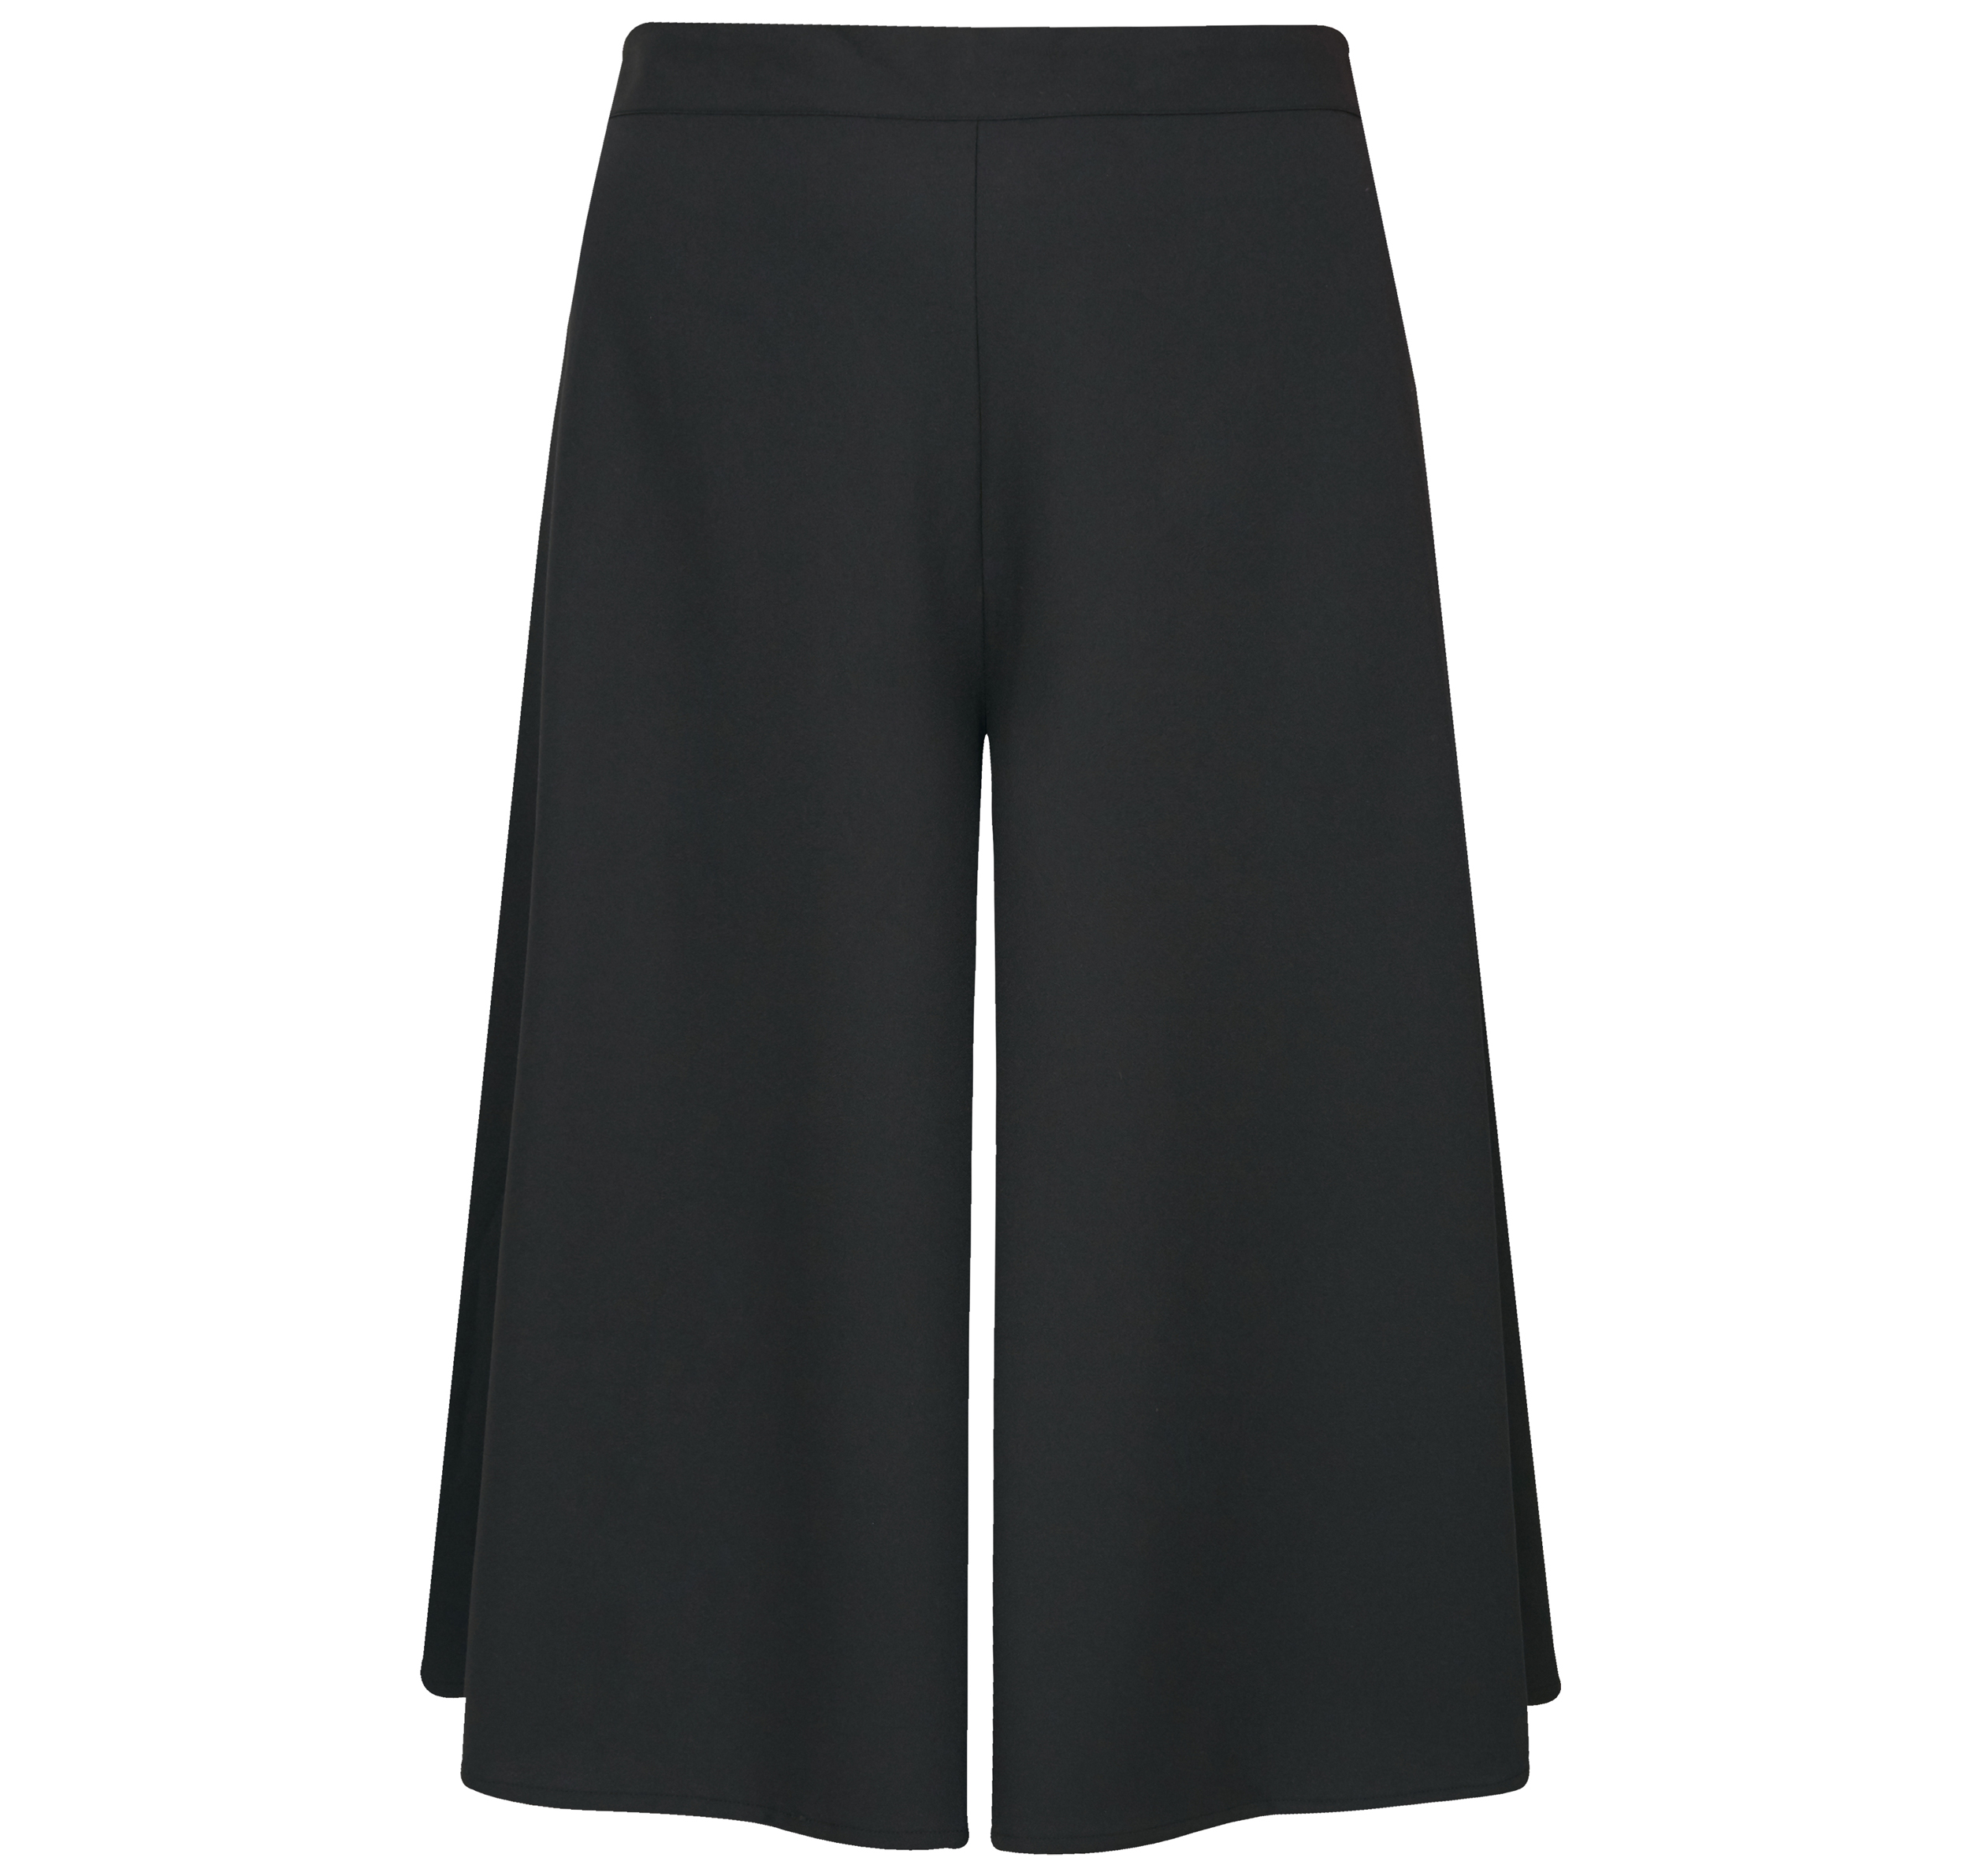 Yours Clothing Black Wide Leg Culottes